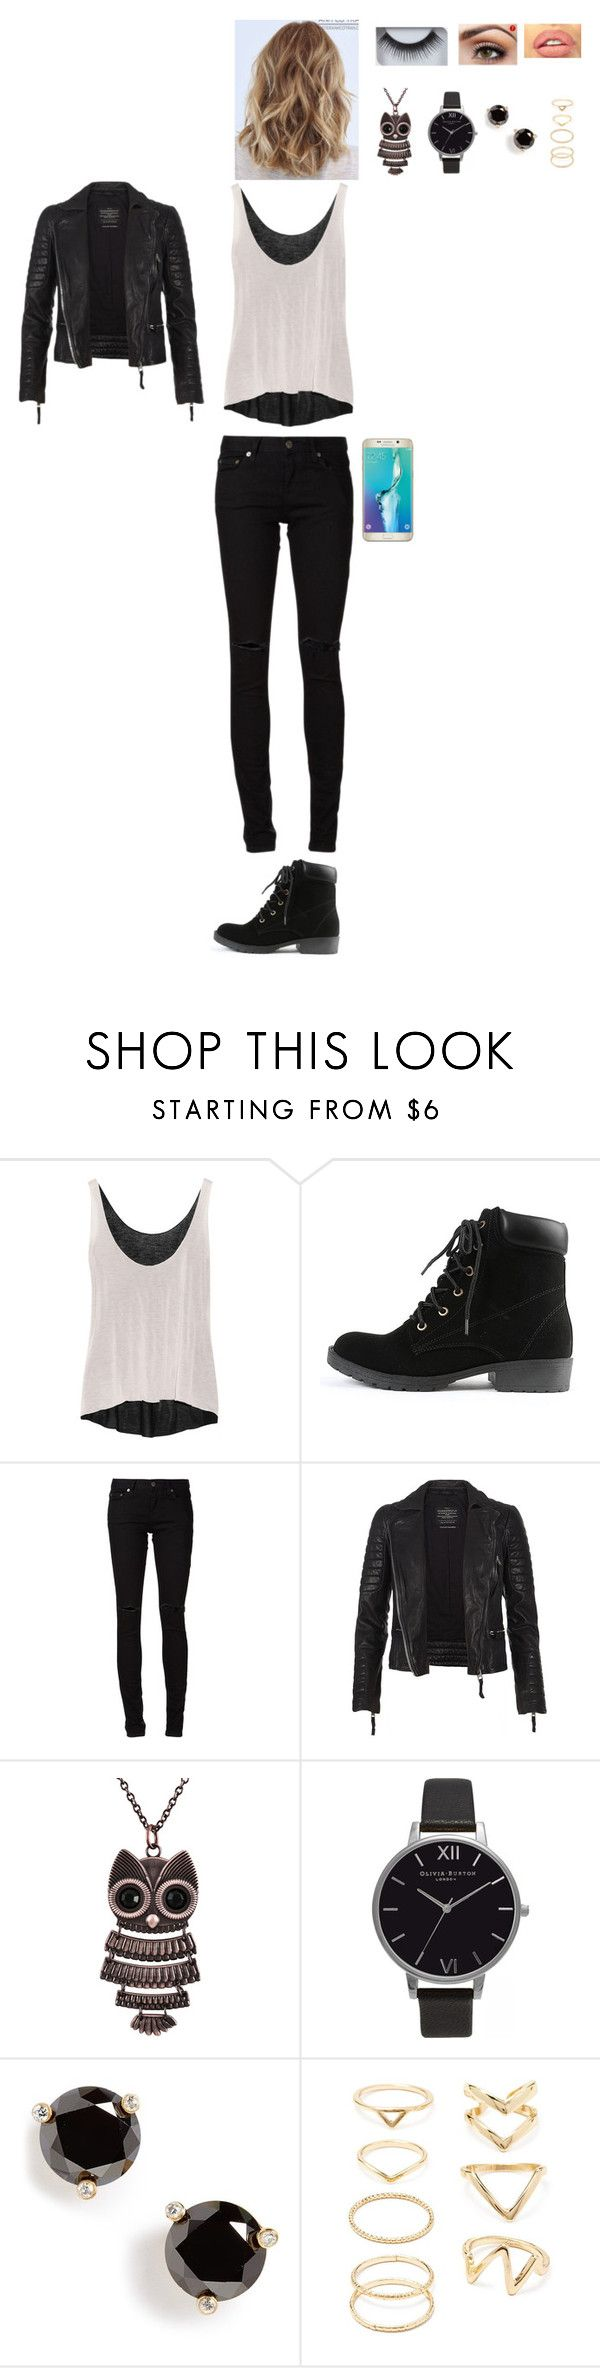 """Untitled #1137"" by leacousty55 ❤ liked on Polyvore featuring Enza Costa, Yves Saint Laurent, AllSaints, Samsung, Decree, Olivia Burton, Kate Spade, Forever 21, Georgie Beauty and women's clothing"